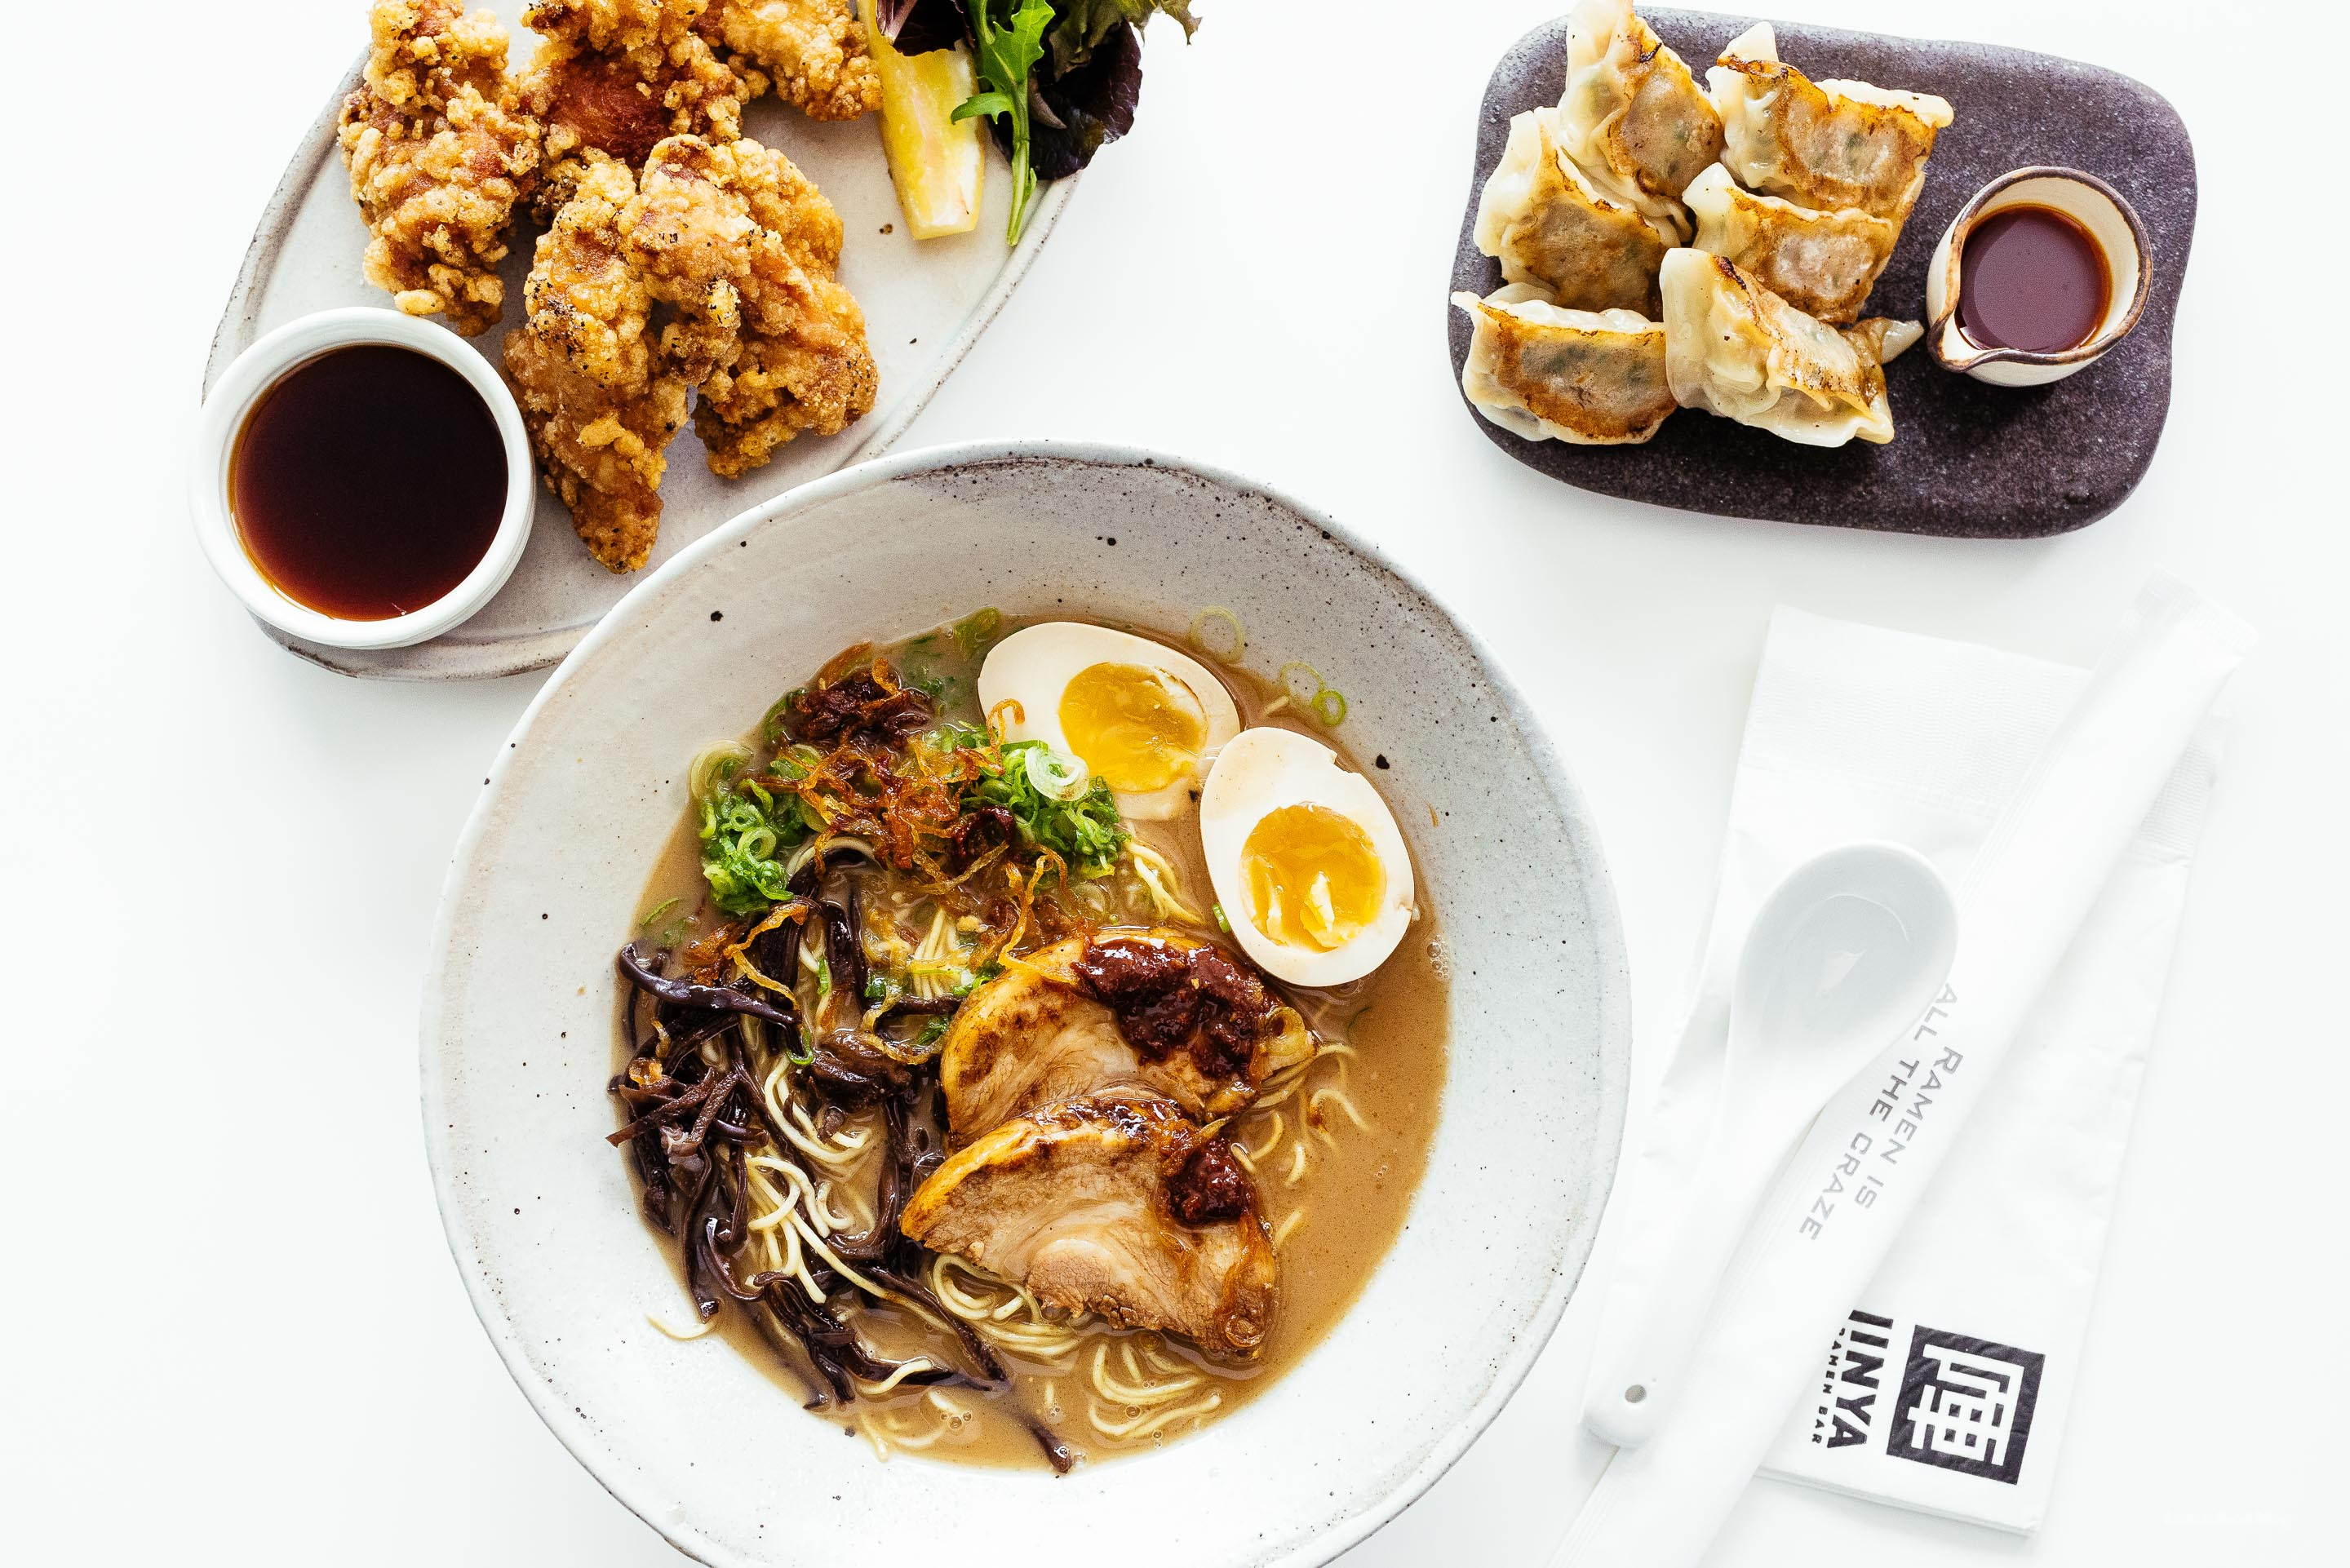 20 Of The Best Restaurants On Grubhub You Can Order For